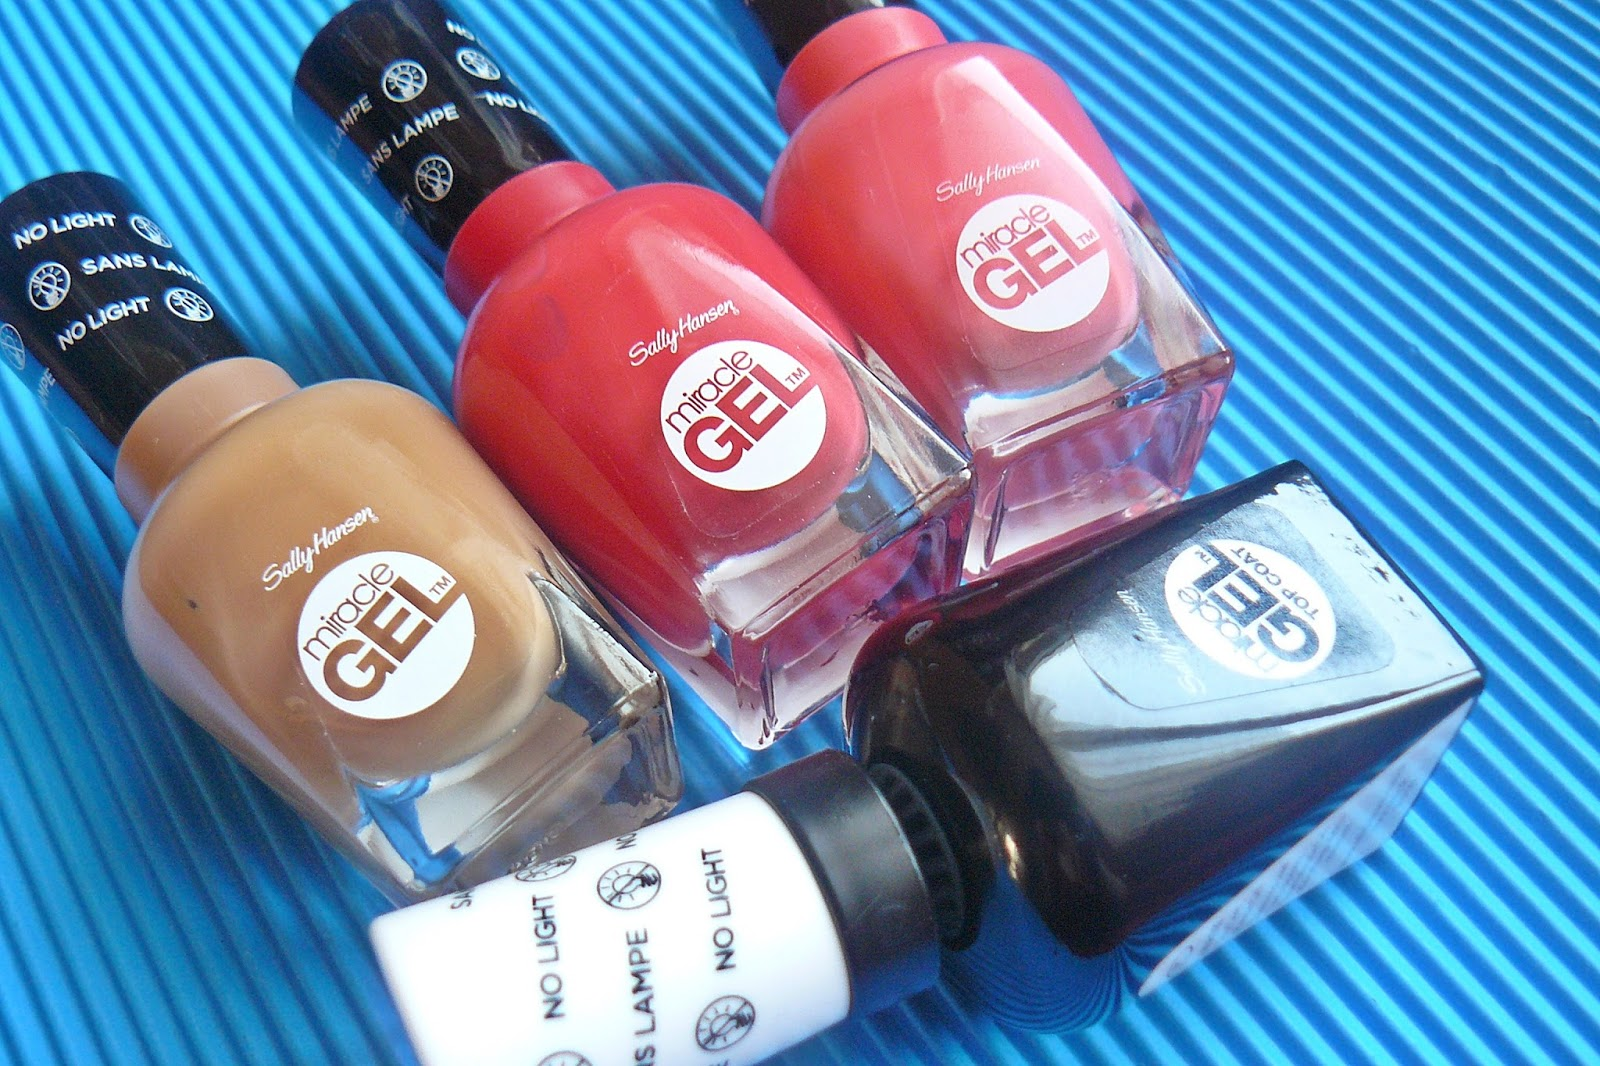 MIRACLE GEL SALLY HANSEN